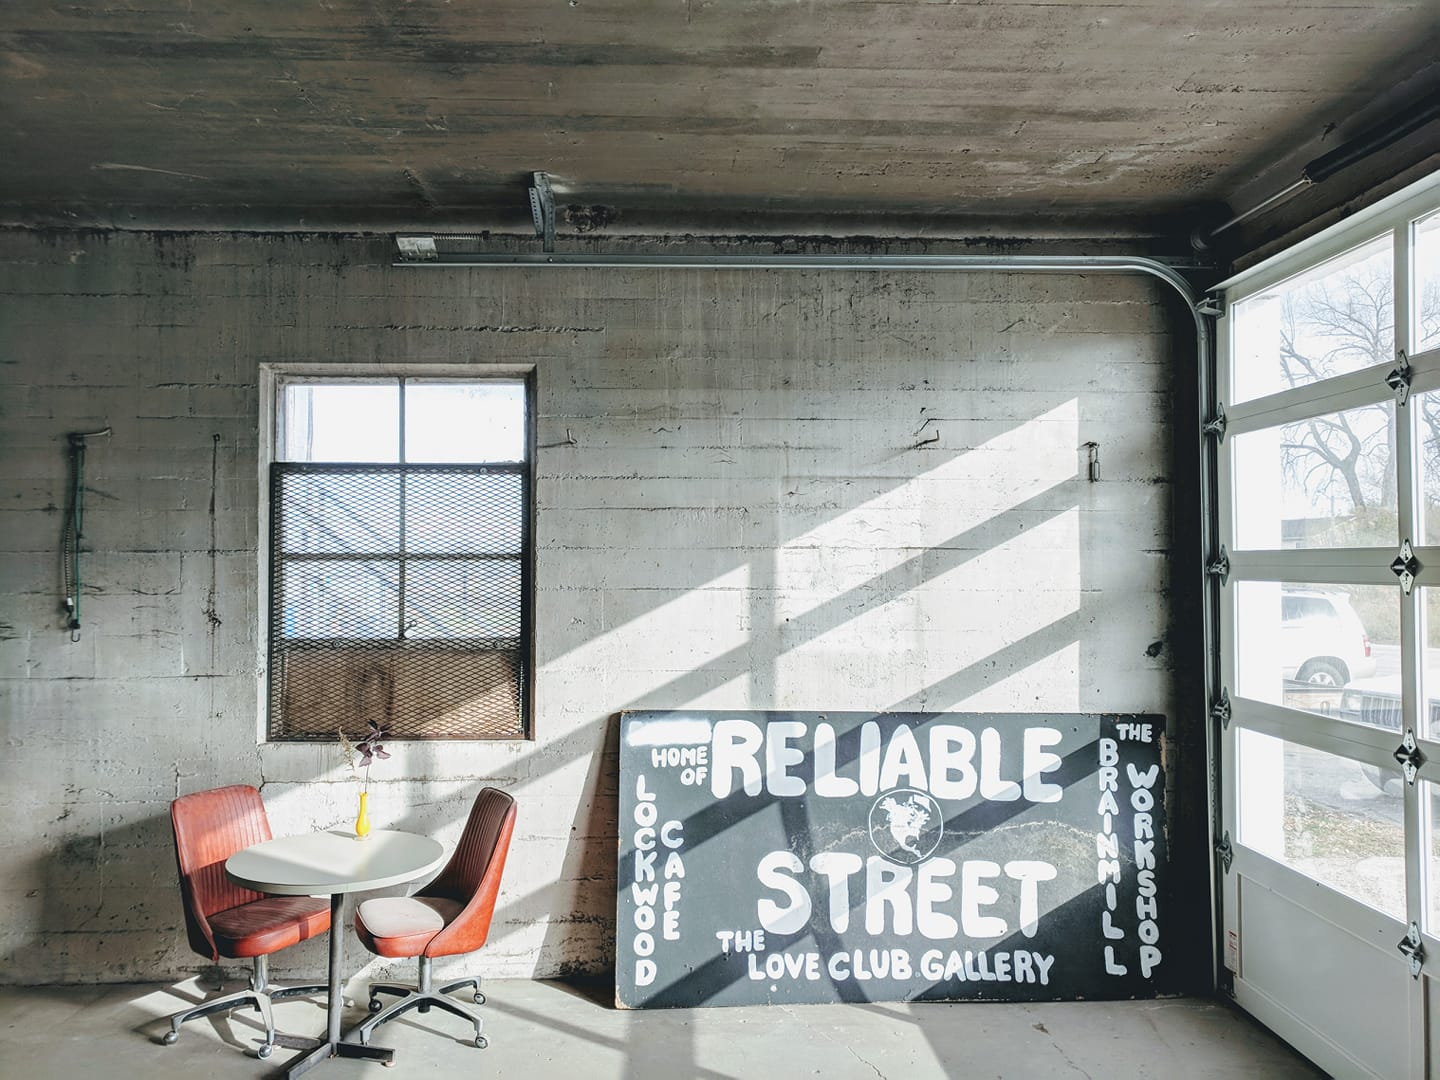 Lockwood cafe_ Reliable street